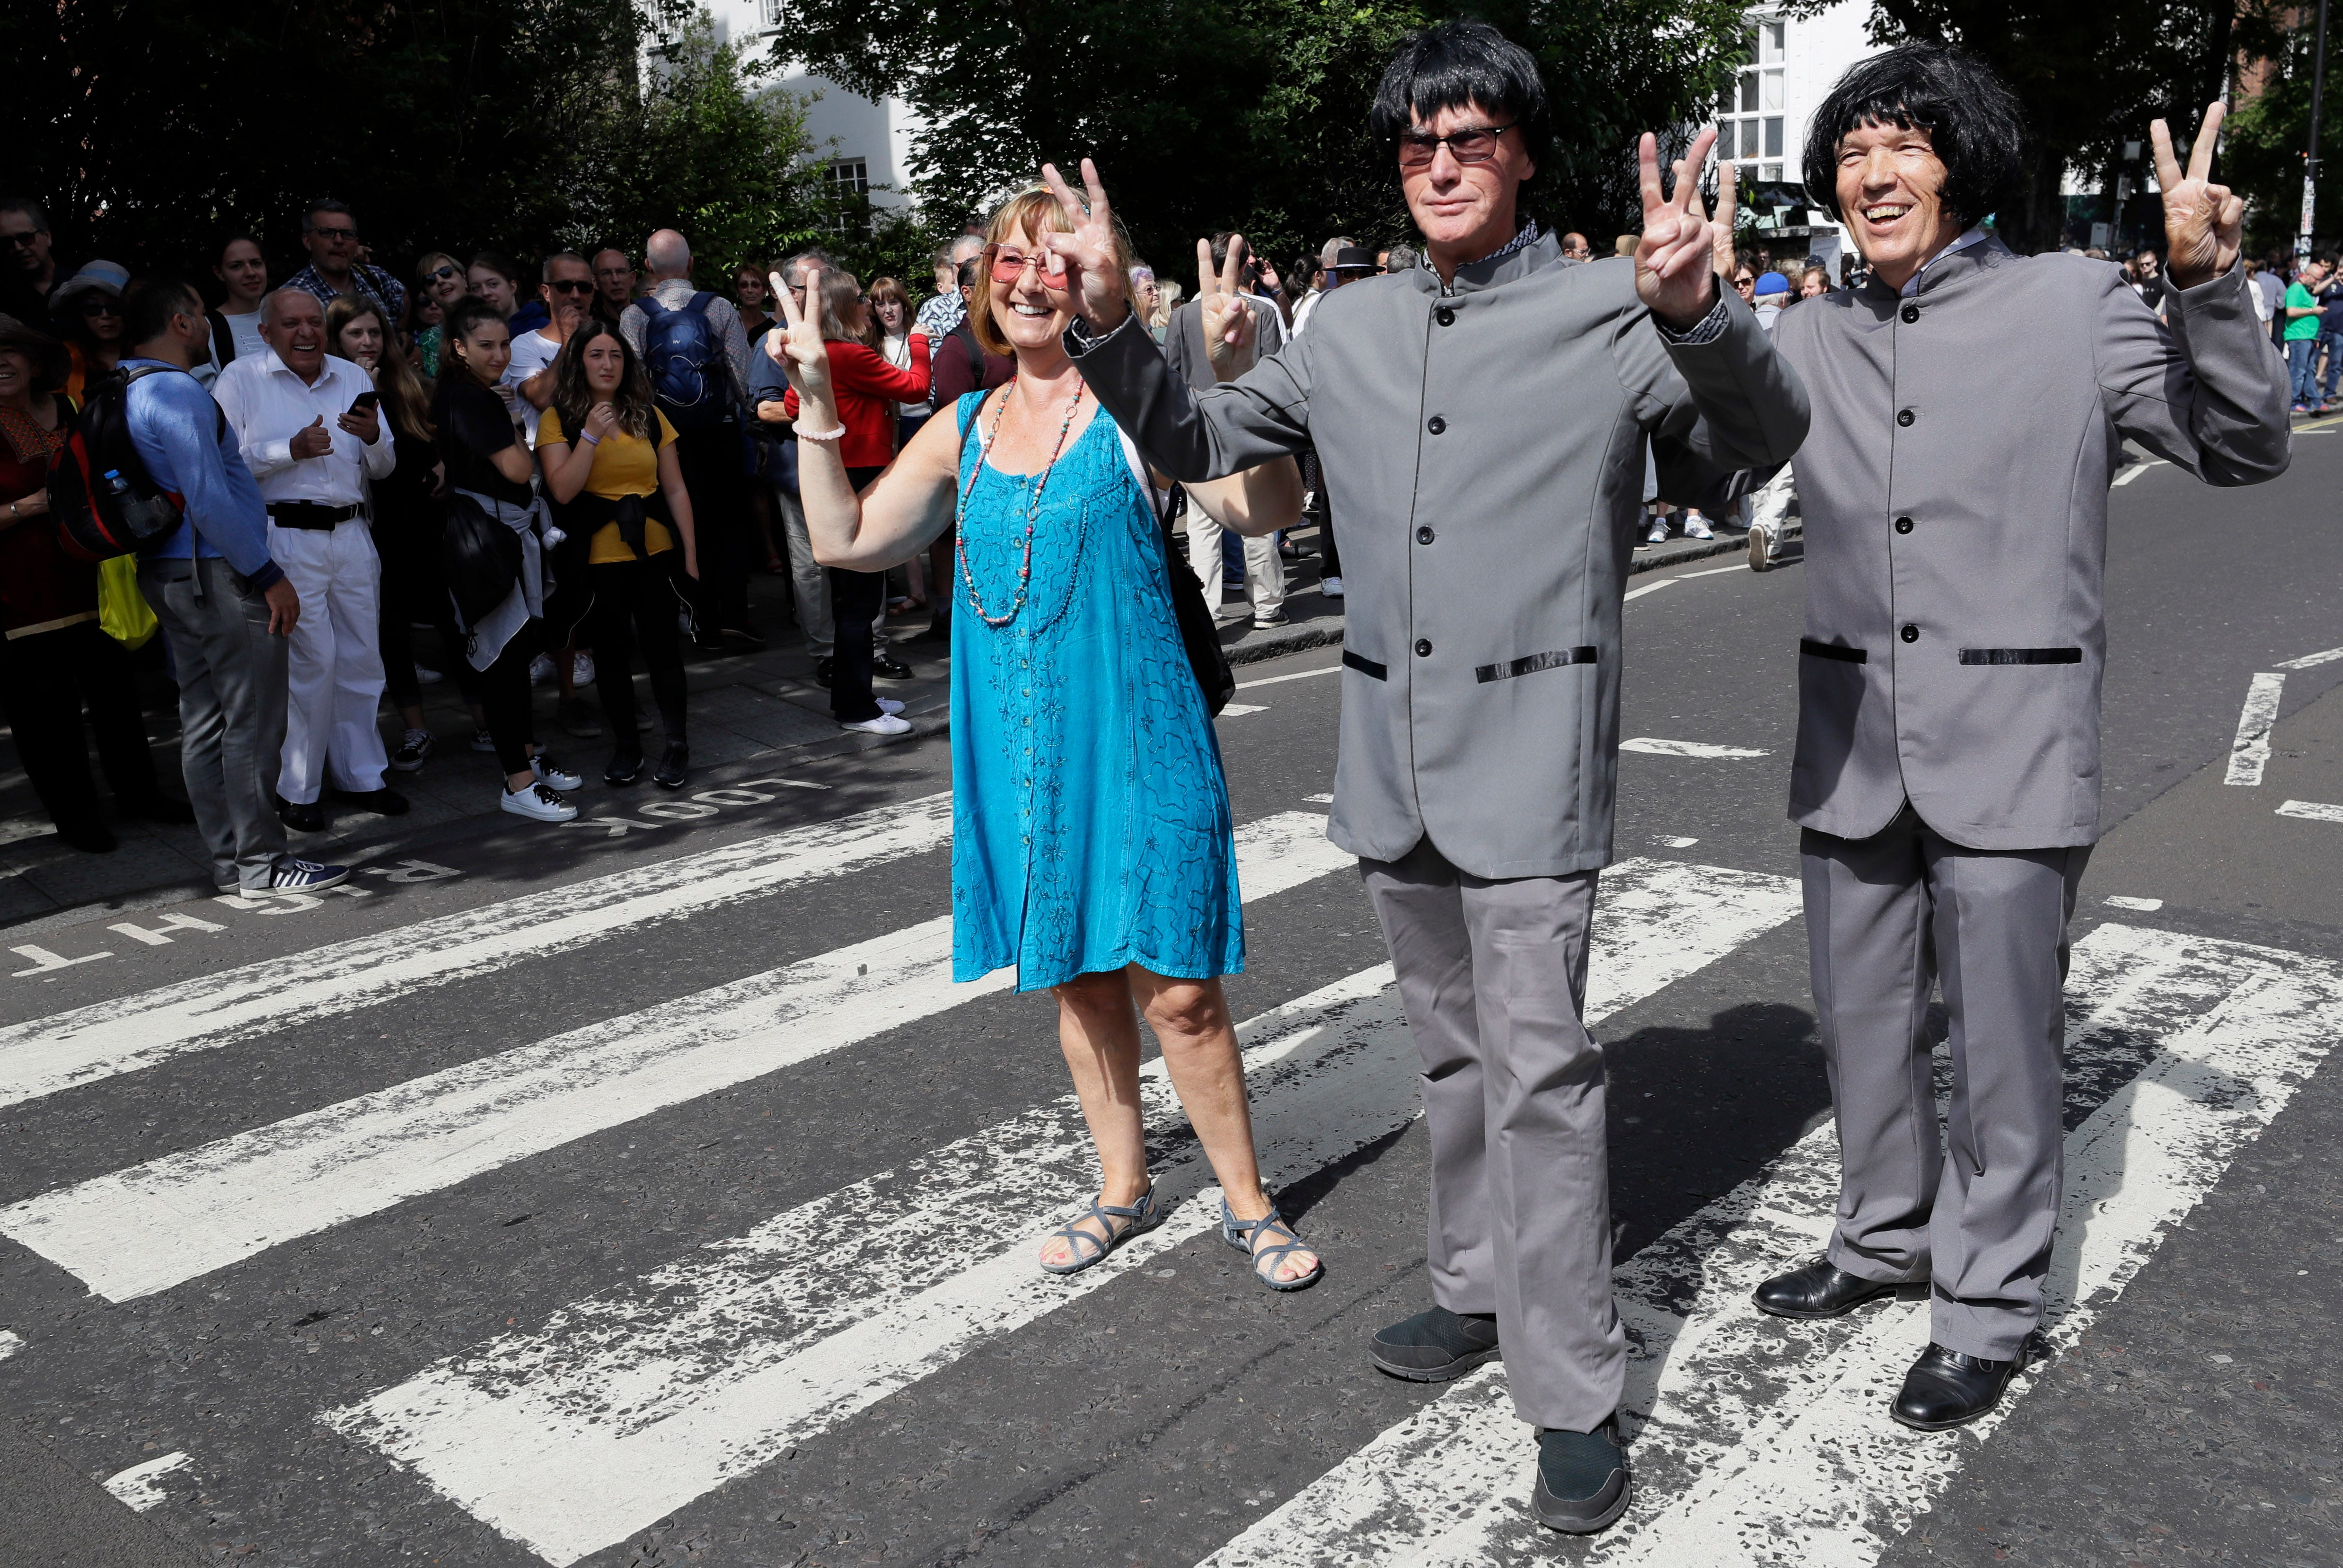 Beatles fans celebrate 'Abbey Road' cover's 50th anniversary